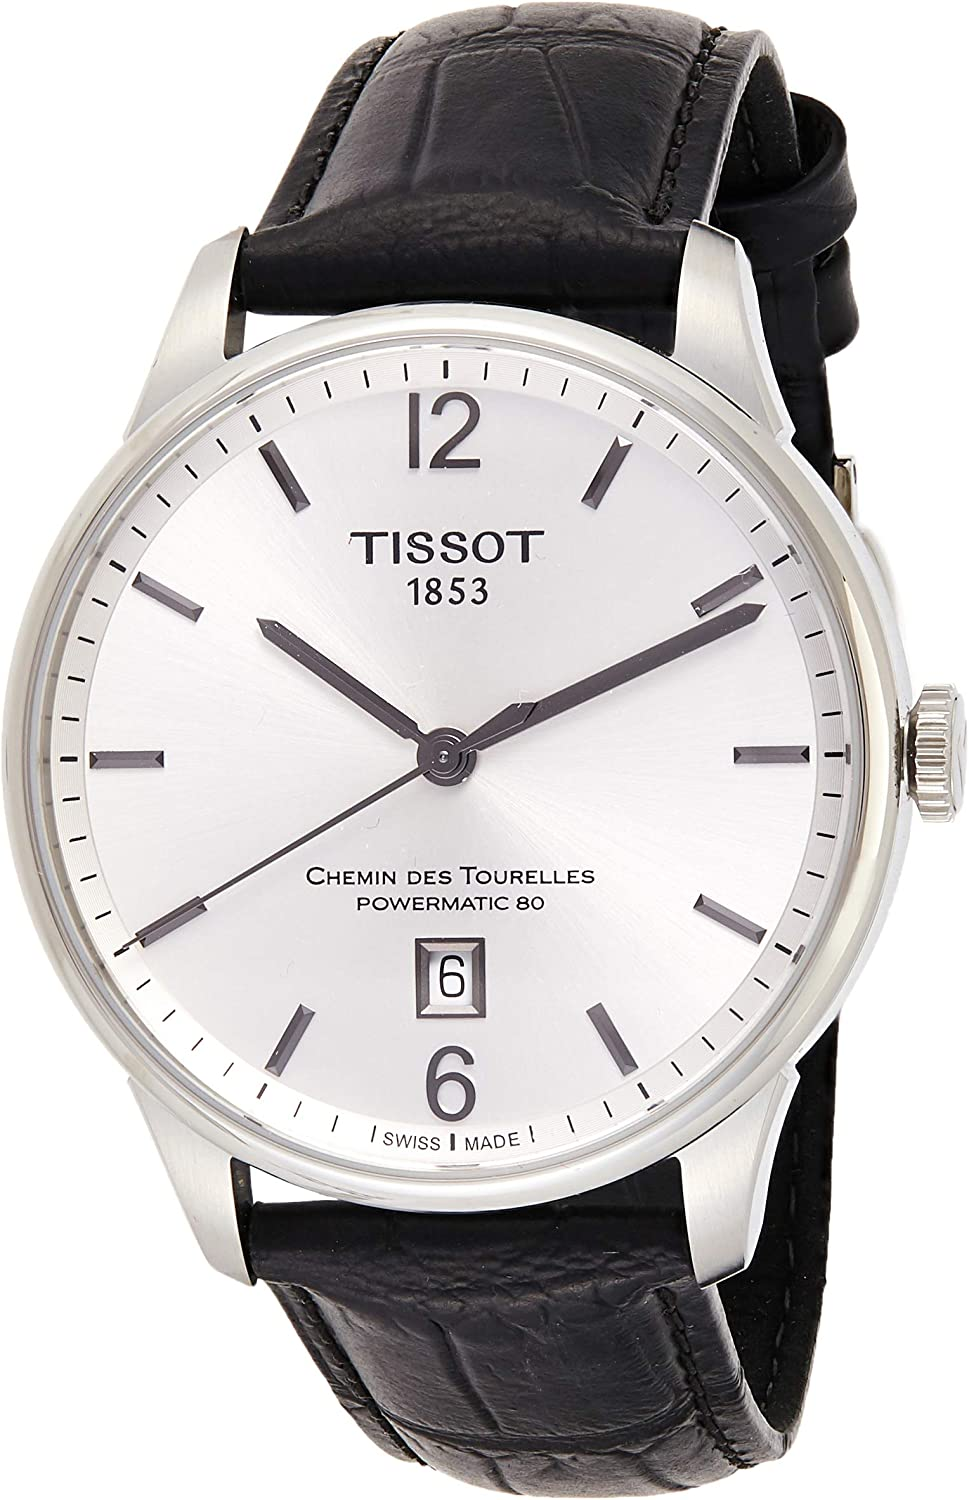 Tissot Men s Chemin Des Tourelles Stainless Steel Swiss-Automatic Watch with Leather Strap, Black, 20 Model T0994071603700